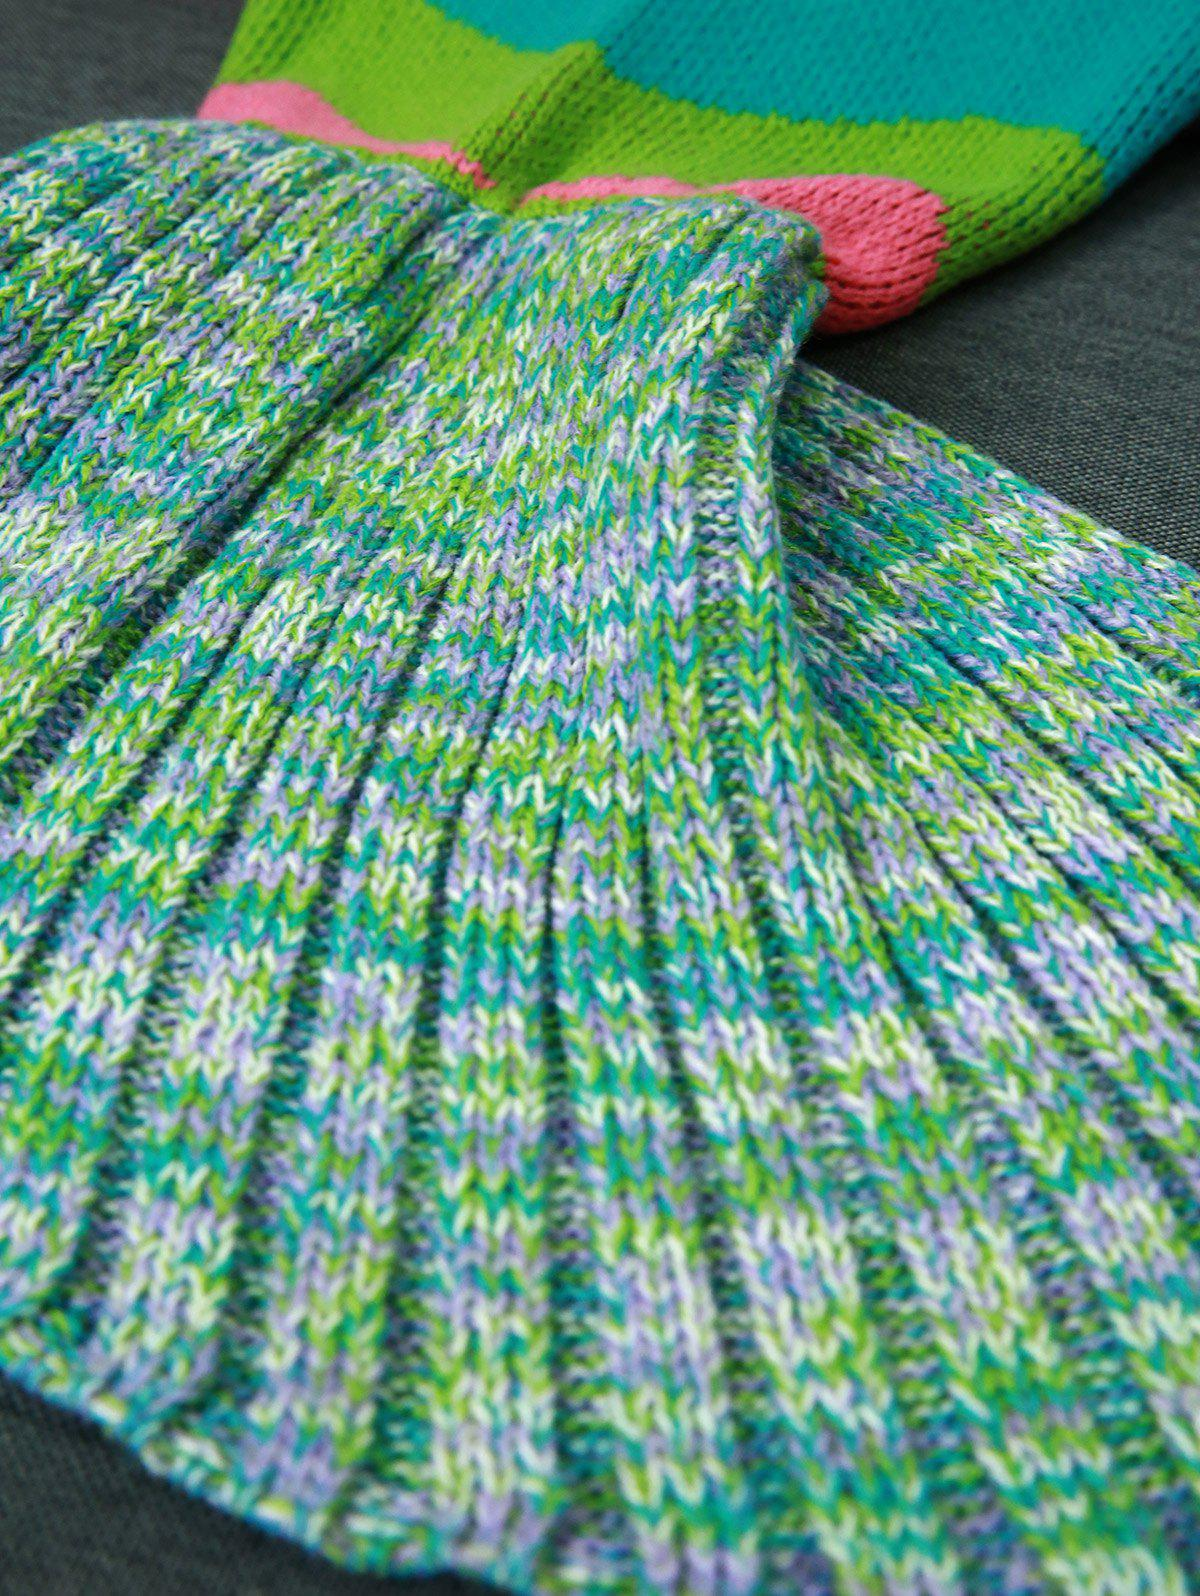 Knitting Colored Wave Stripes Design Mermaid Tail Blanket - COLORMIX